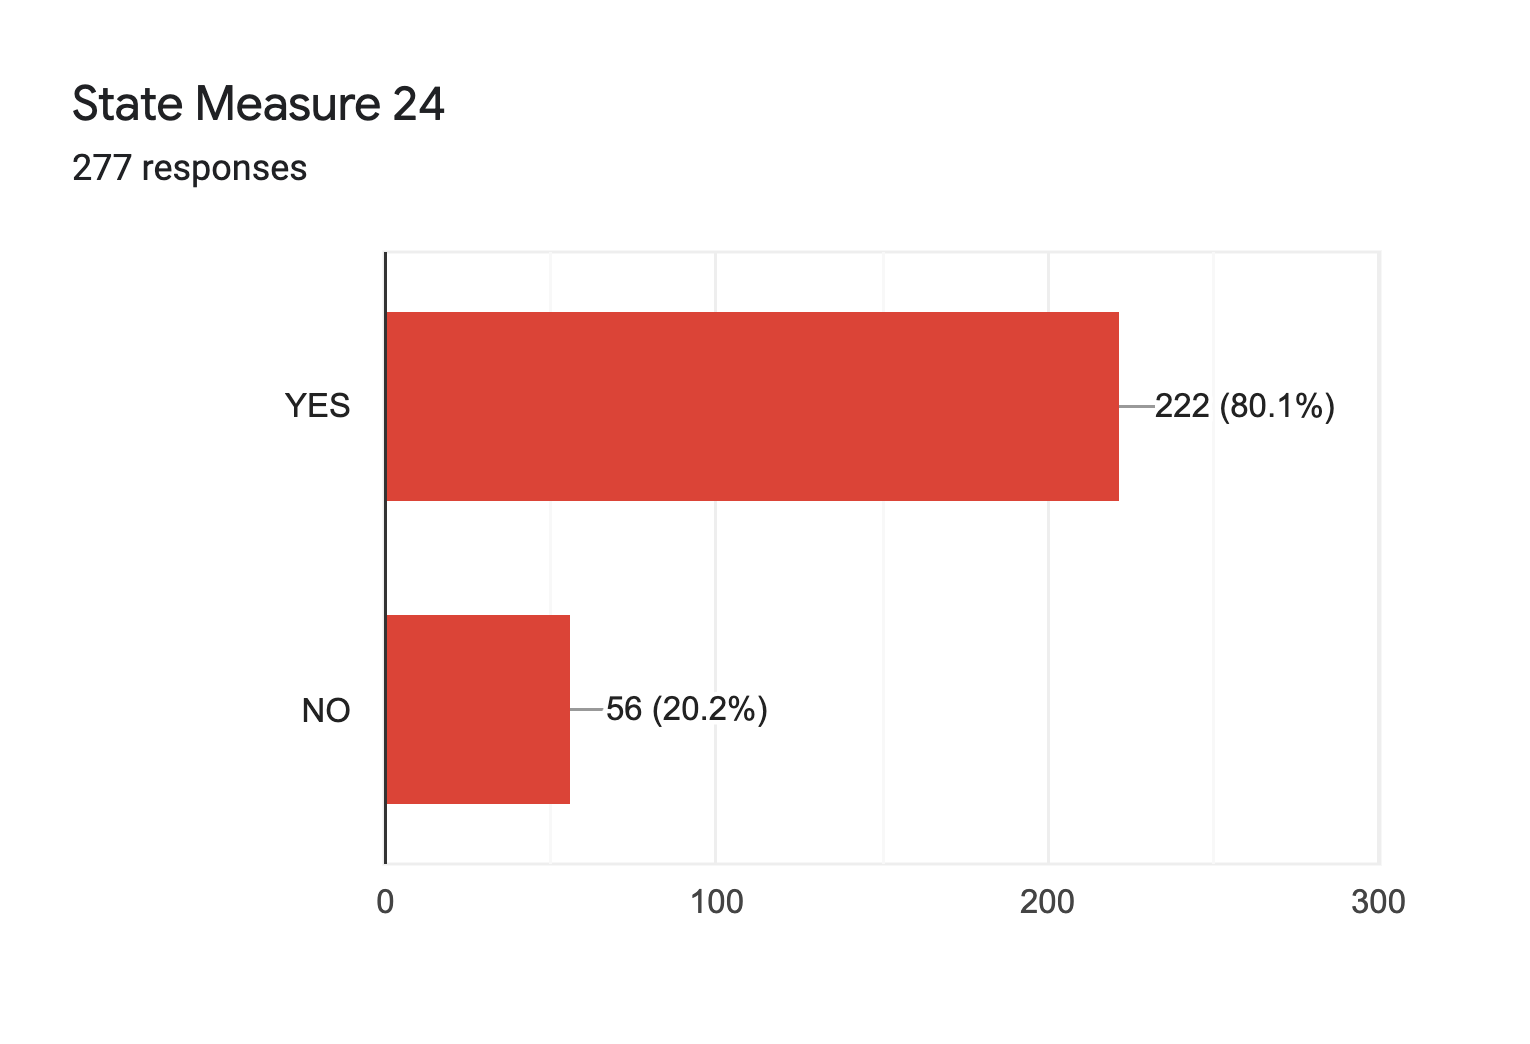 Forms response chart. Question title: State Measure 24. Number of responses: 277 responses.